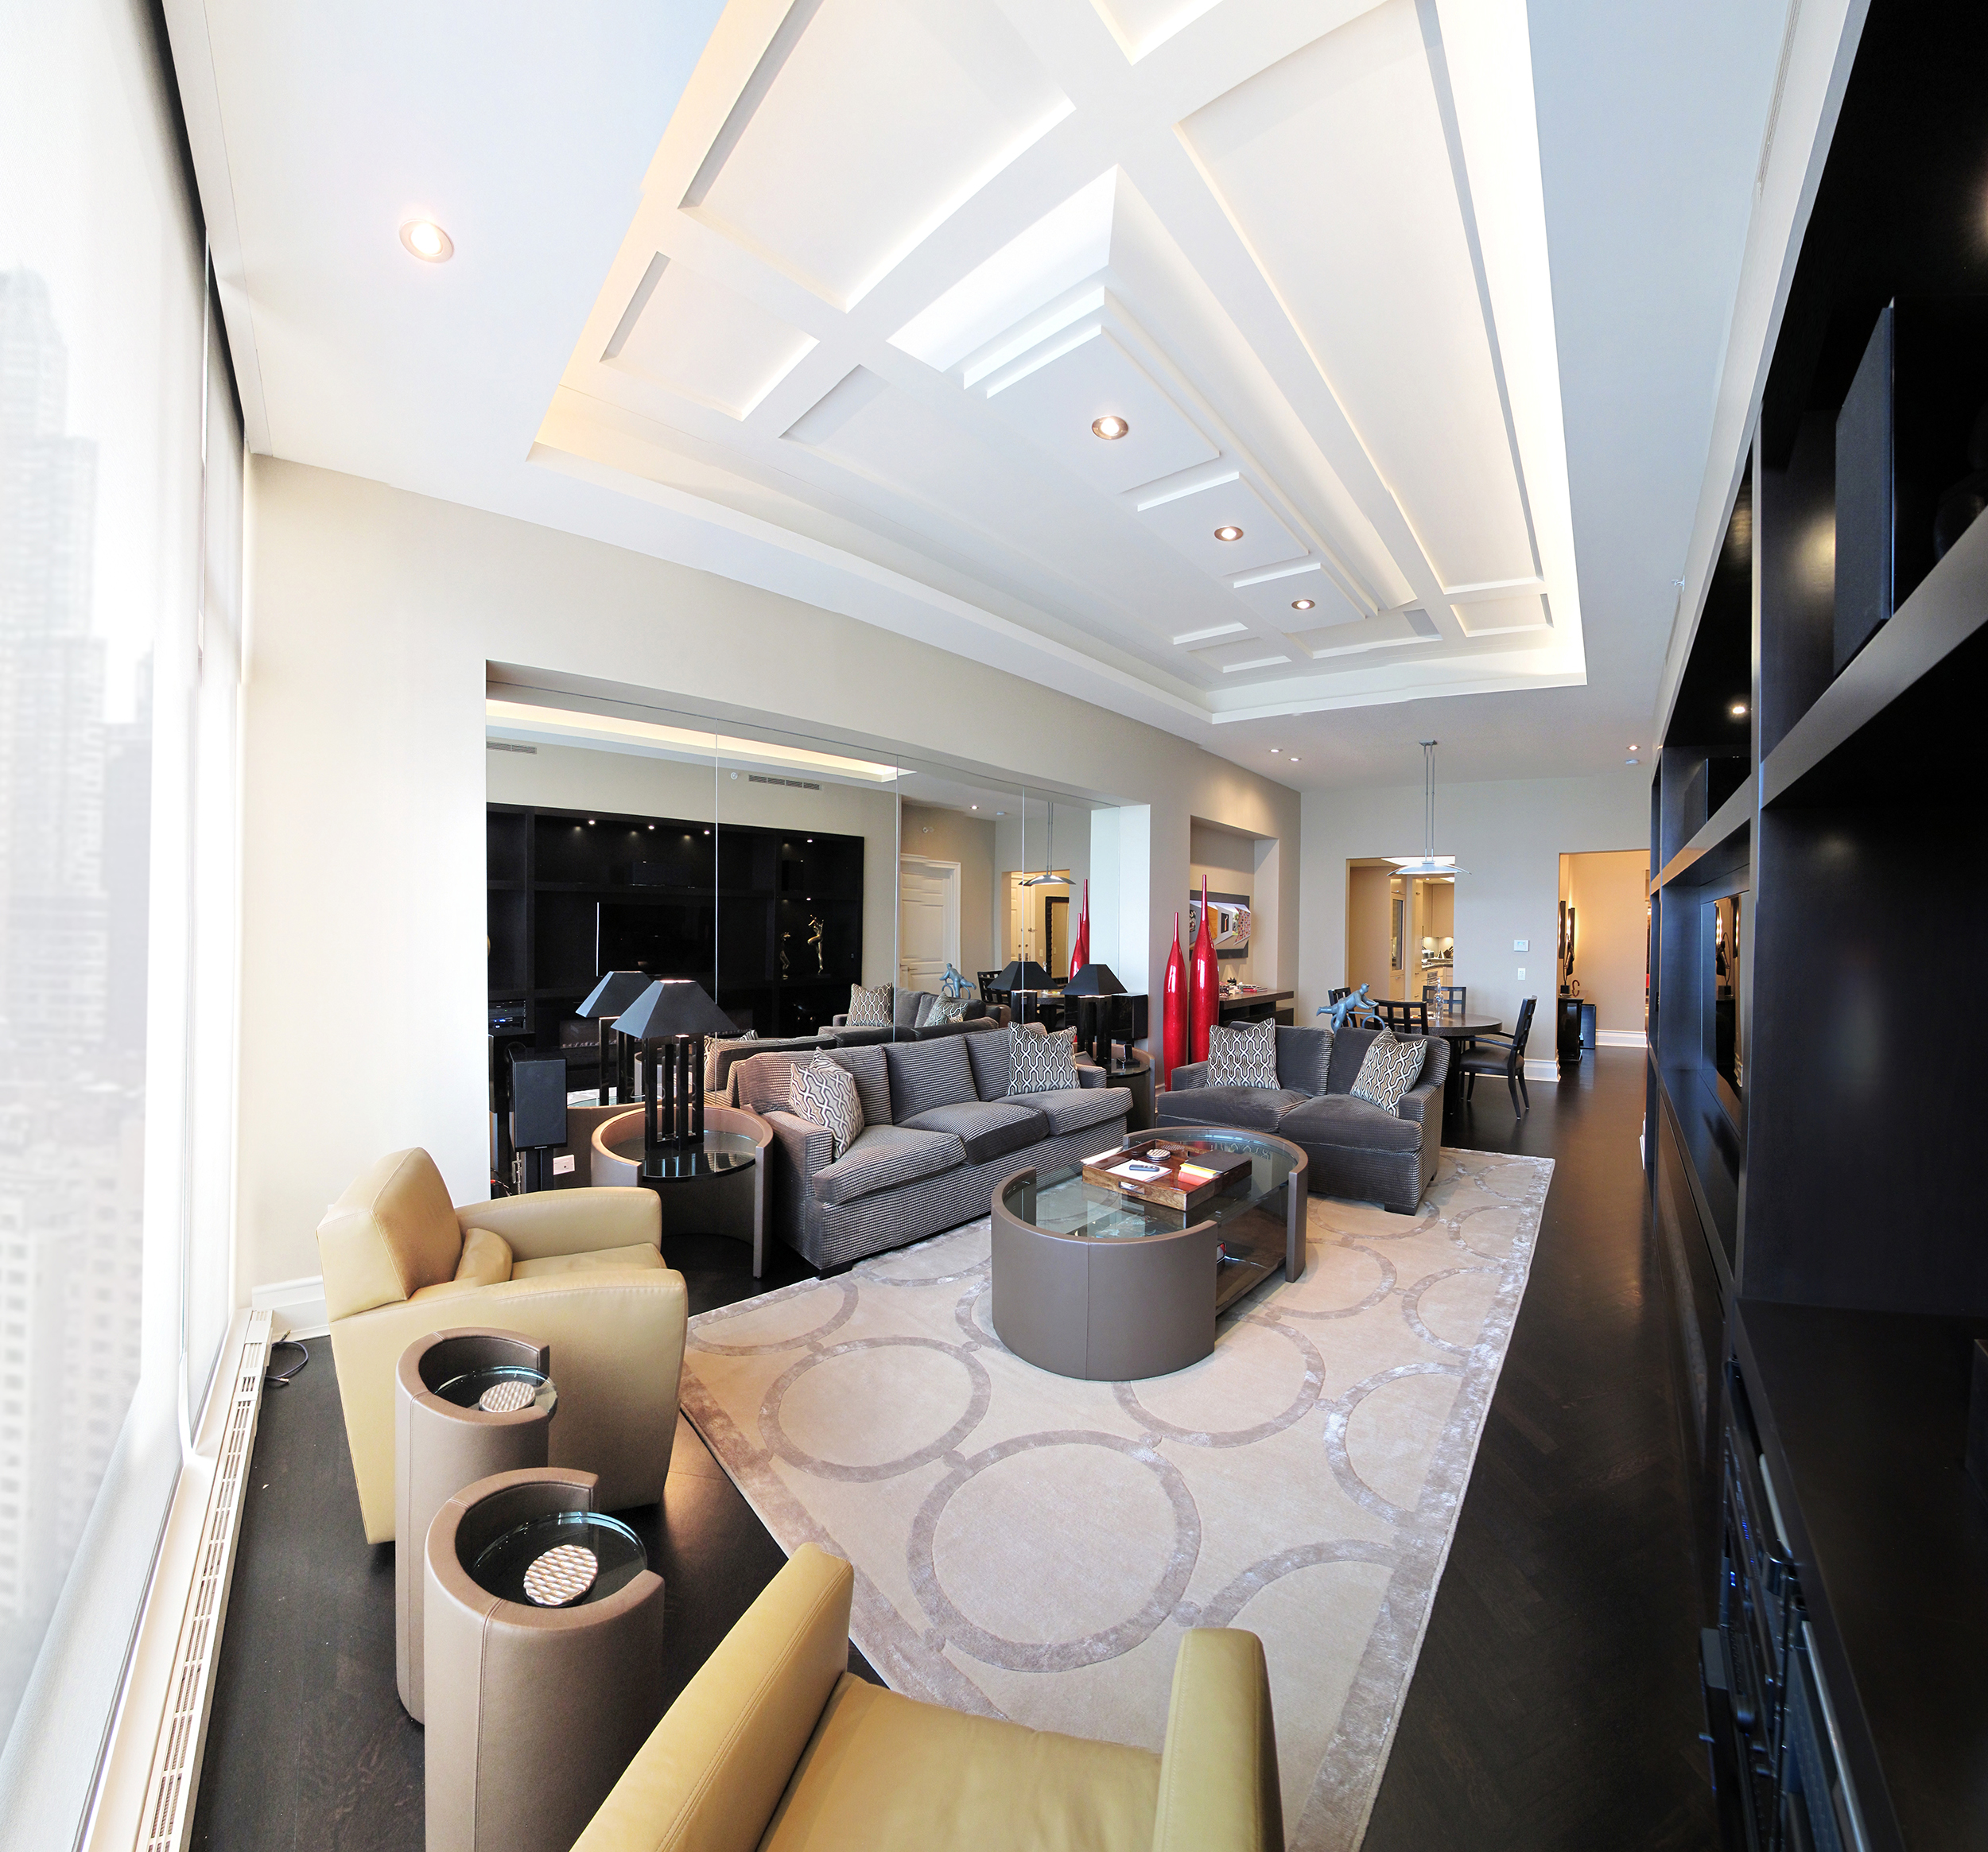 Private Residence at 15 Central Park West, New York, NY